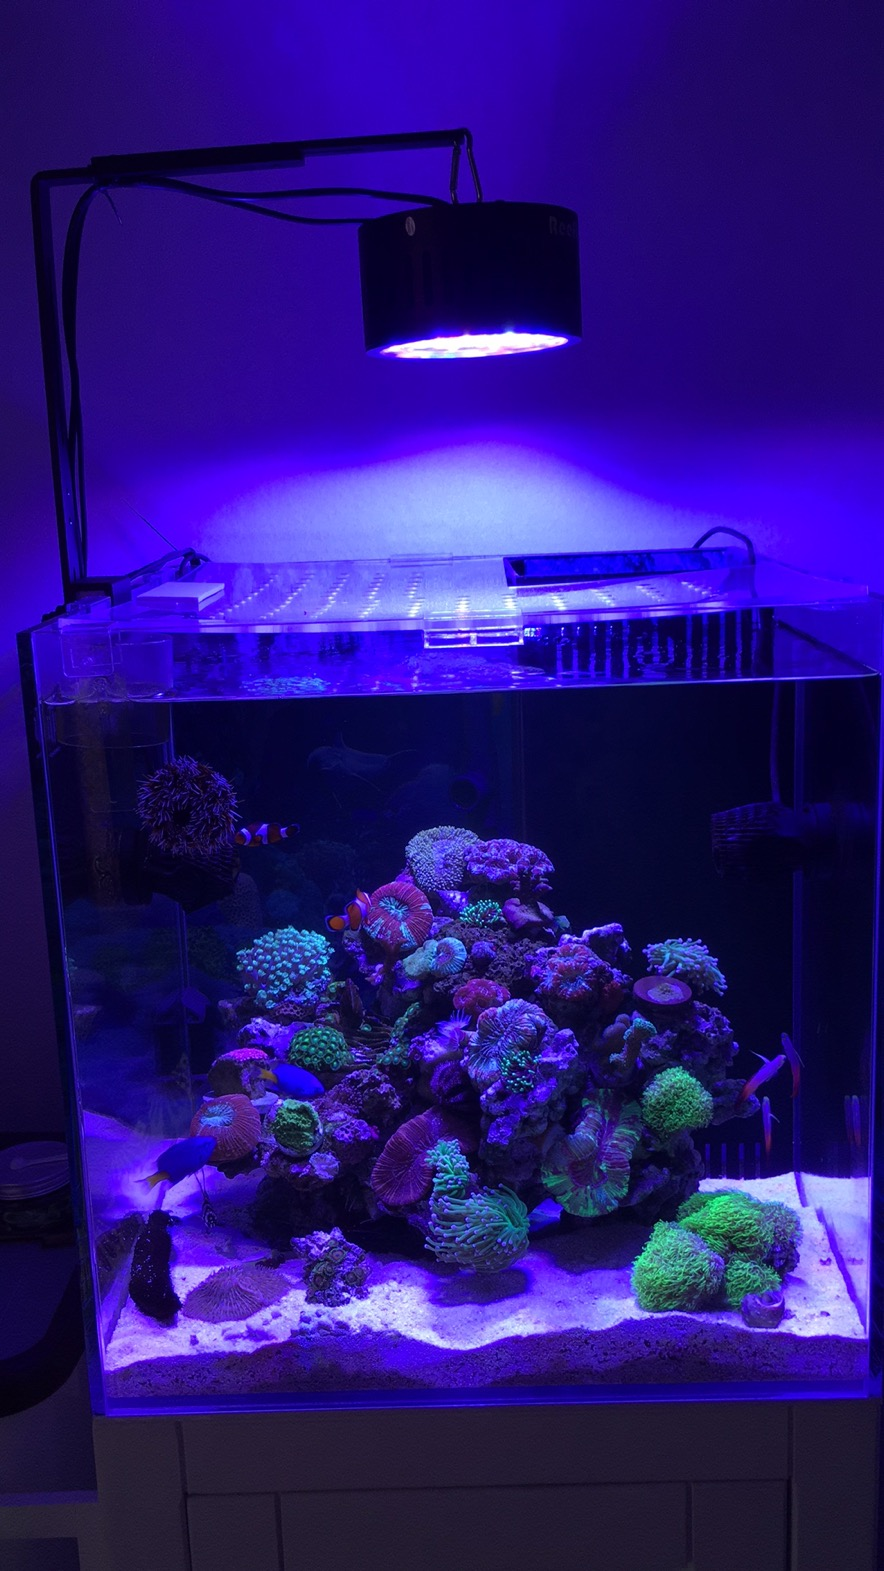 Phlizon Aquarium Light